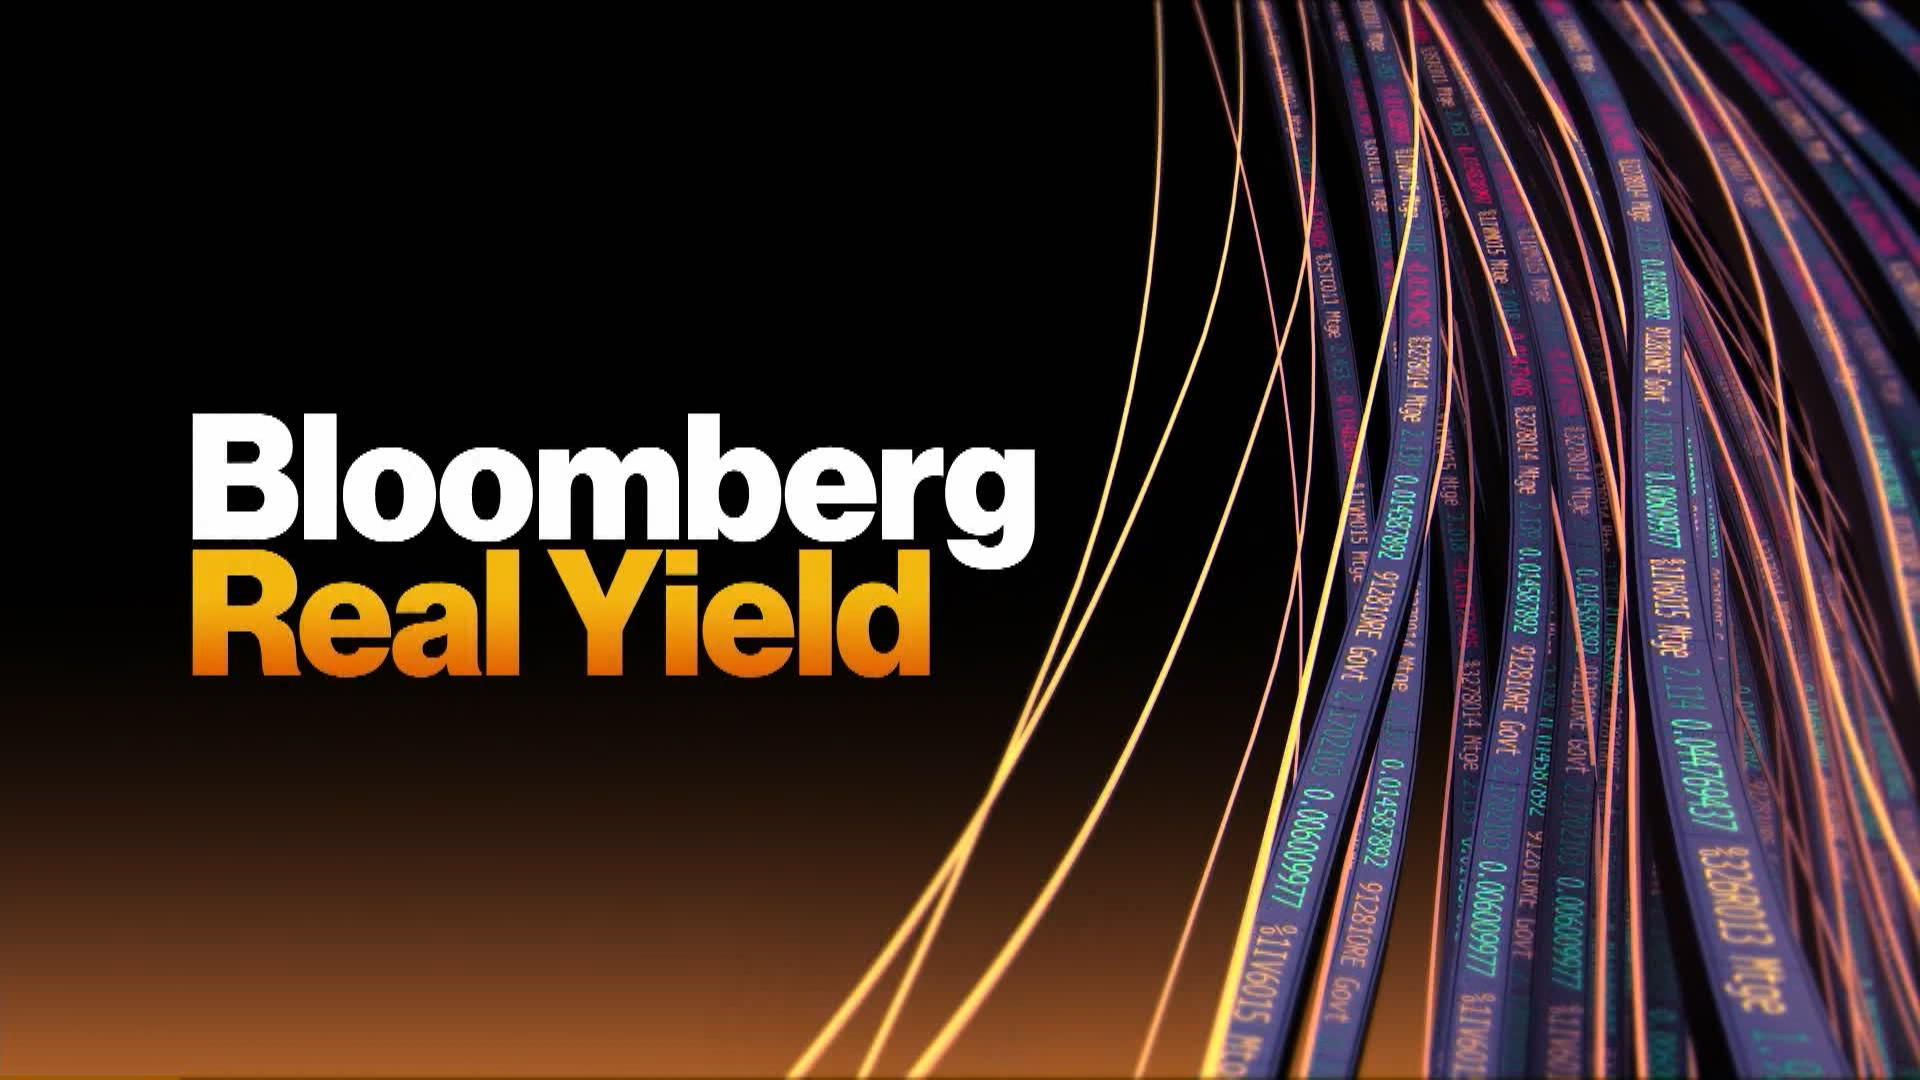 'Bloomberg Real Yield' Full Show (02/28/2020)